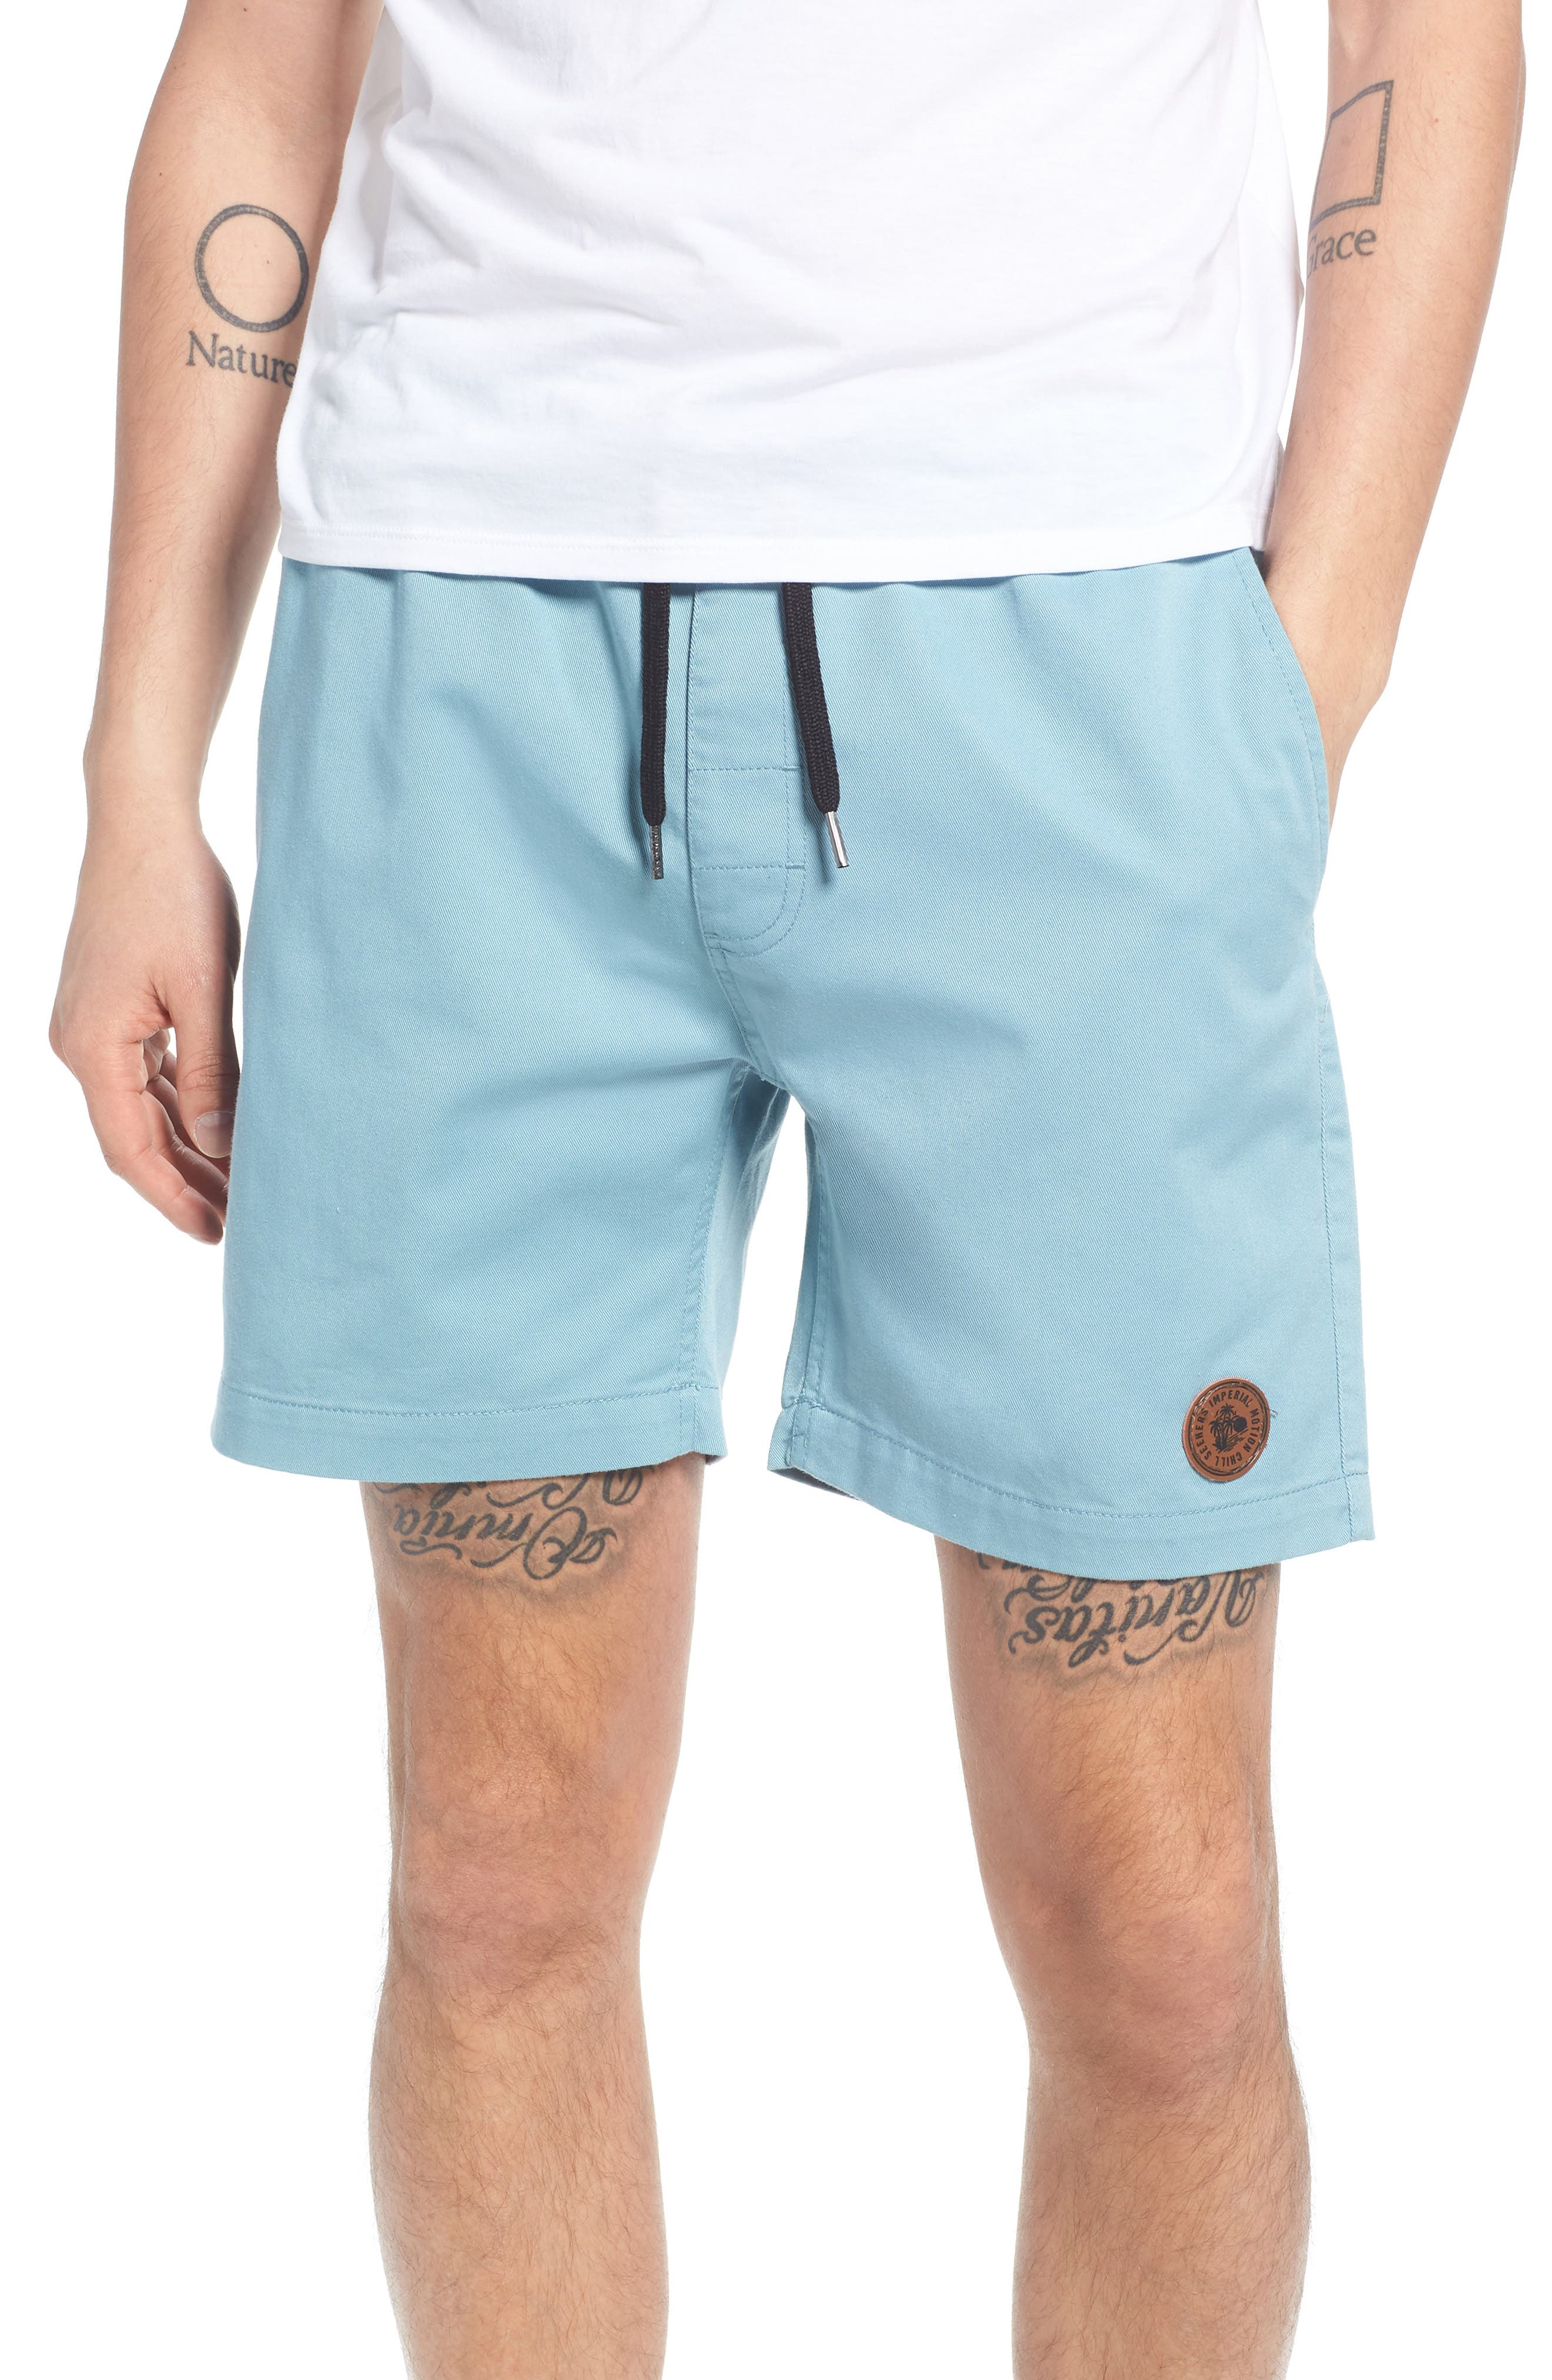 Seeker Shorts,                             Main thumbnail 1, color,                             Light Blue